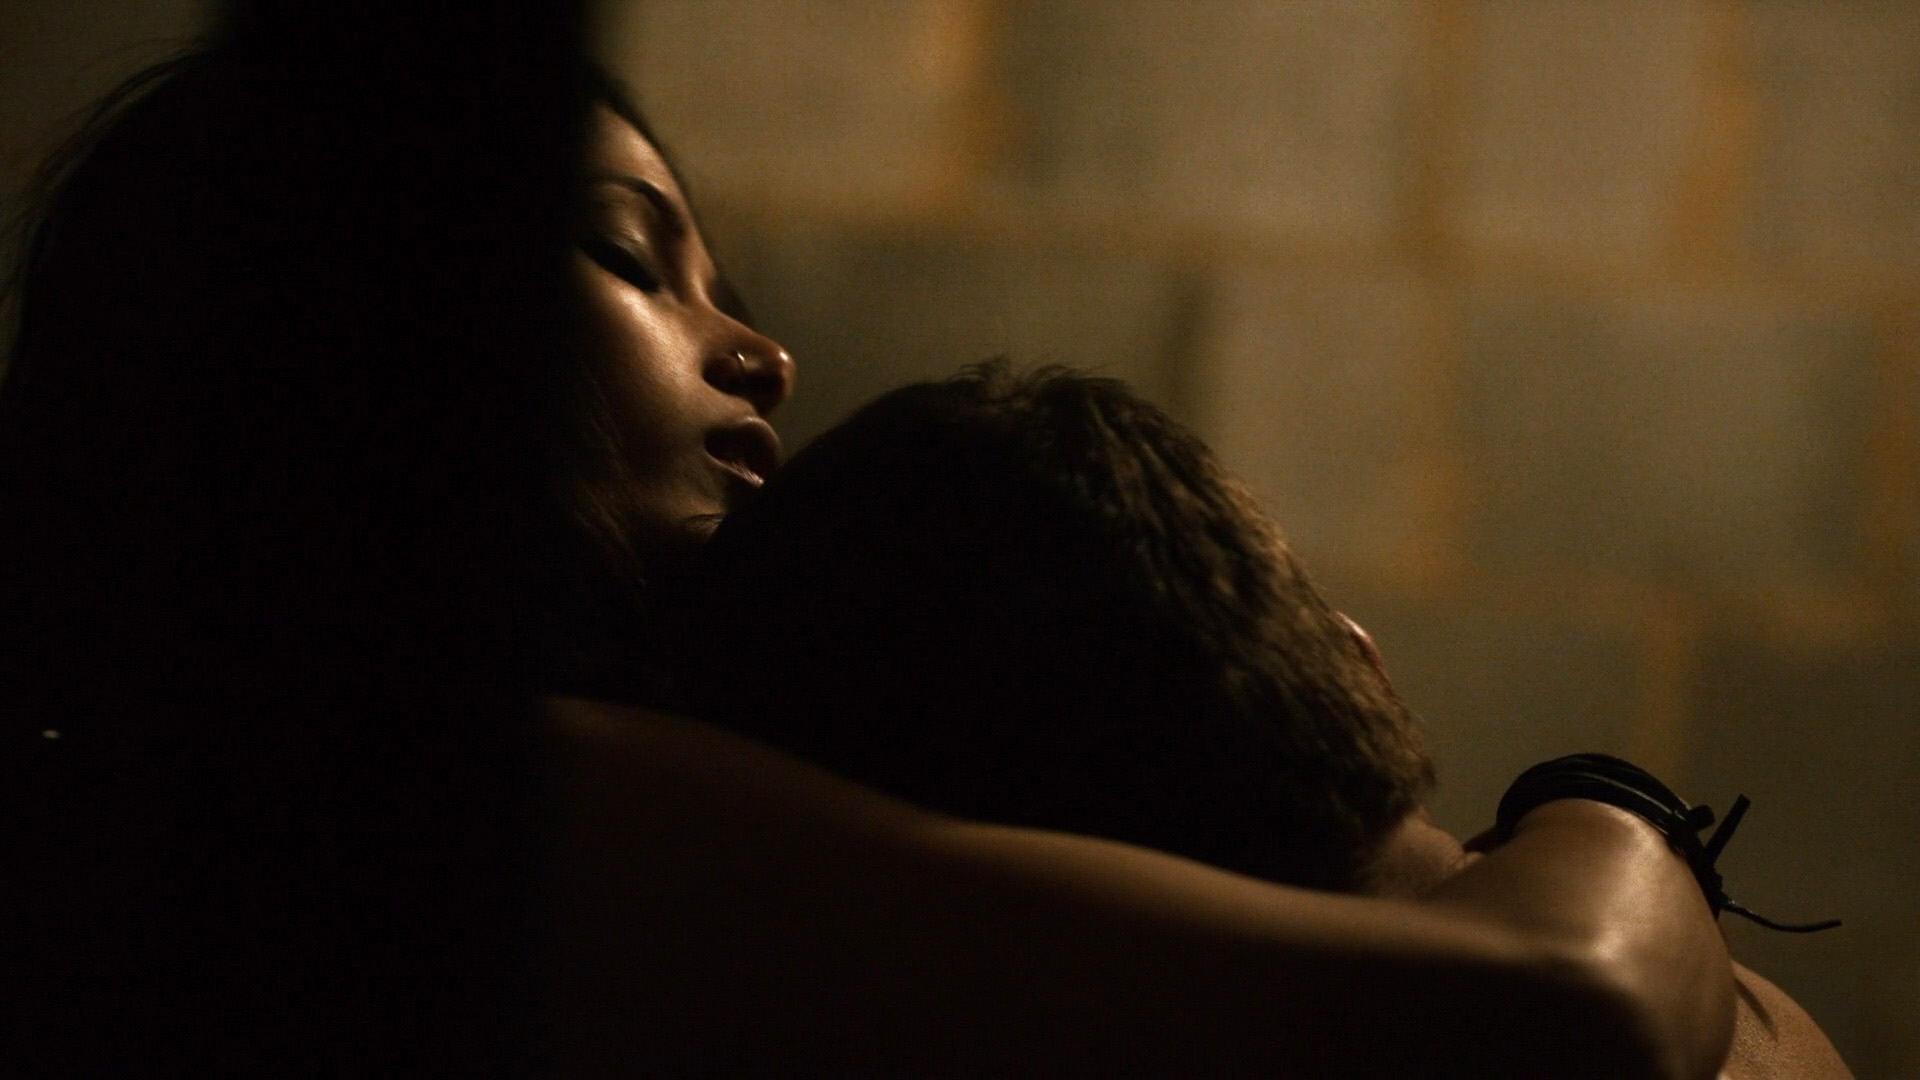 and-freida-pinto-butt-naked